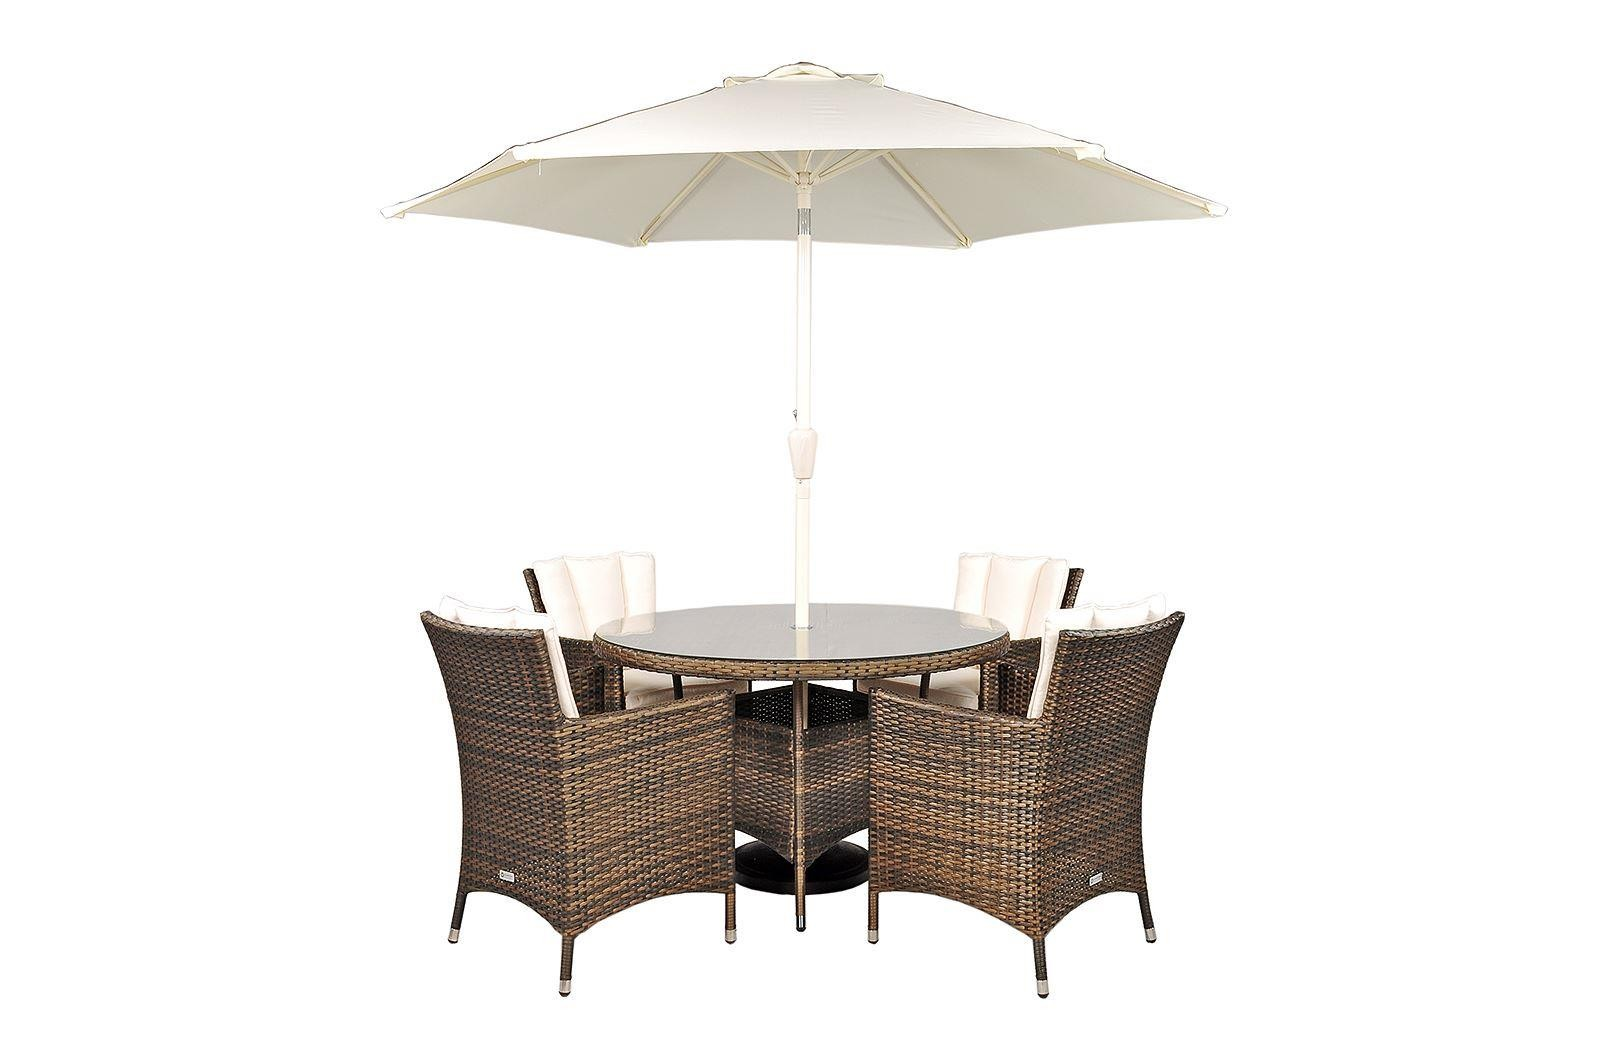 Savannah Rattan Garden Furniture [4 Seat Dining Set Plus Back Cushion]